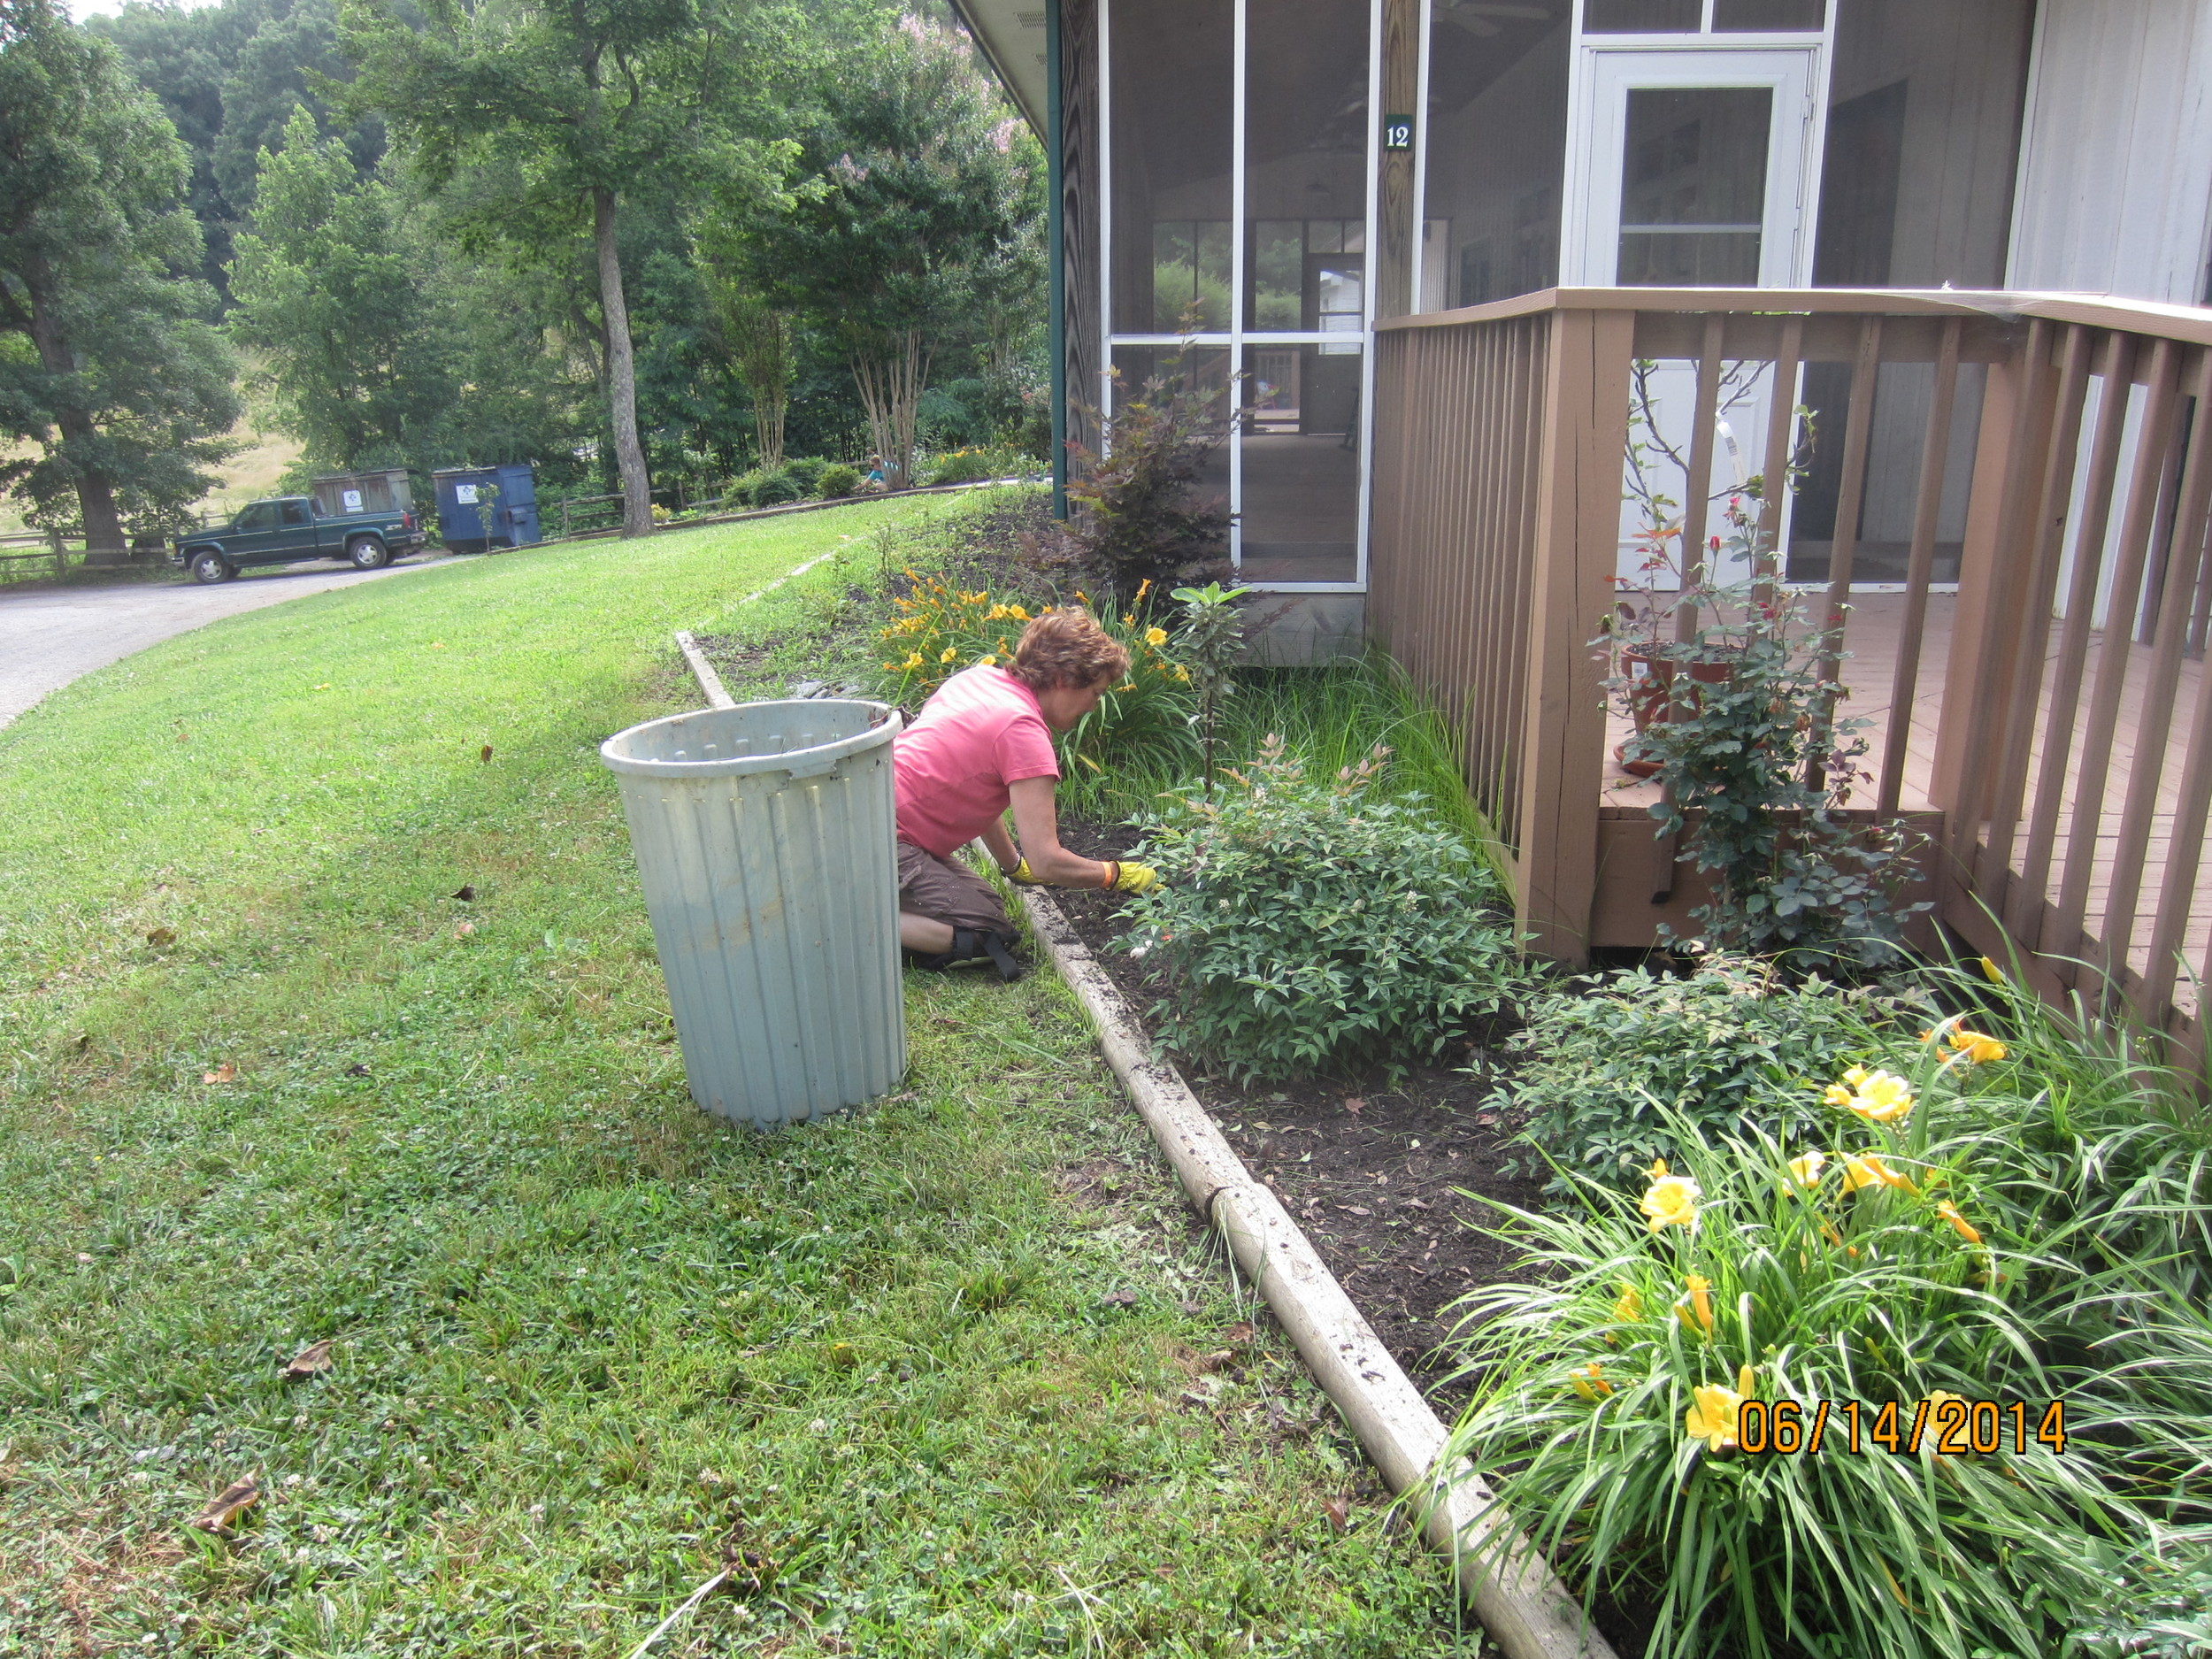 Nanci Scott continues with weeding at the Dining Hall, in preparation of spreading new mulch in the flower beds.